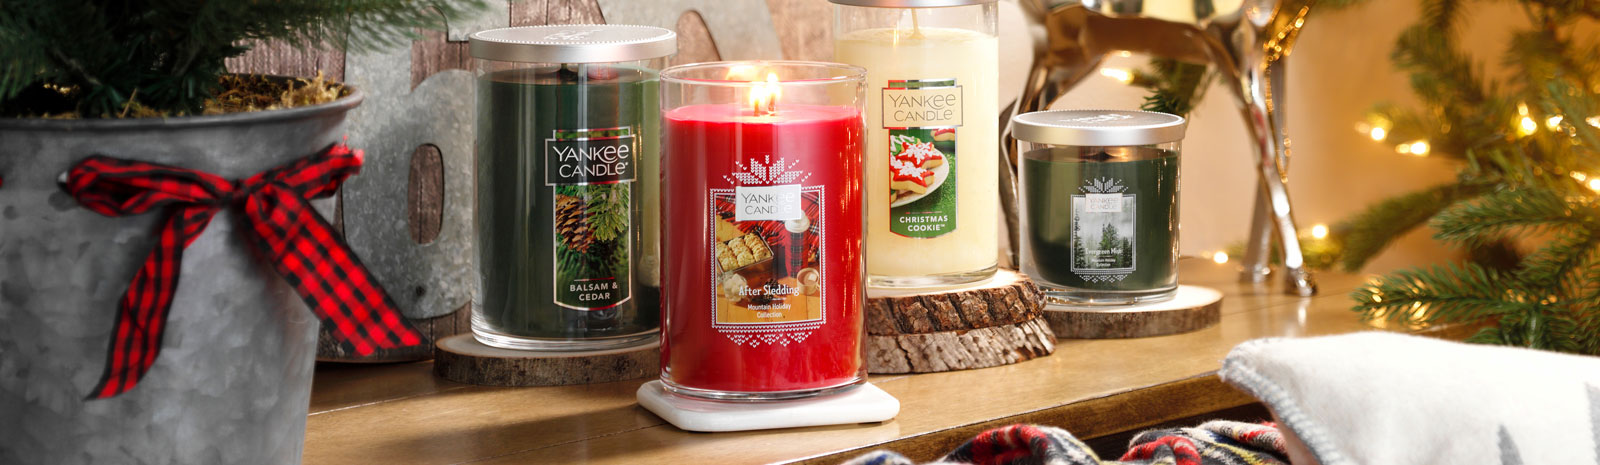 Tumbler Candles - Yankee Candle®